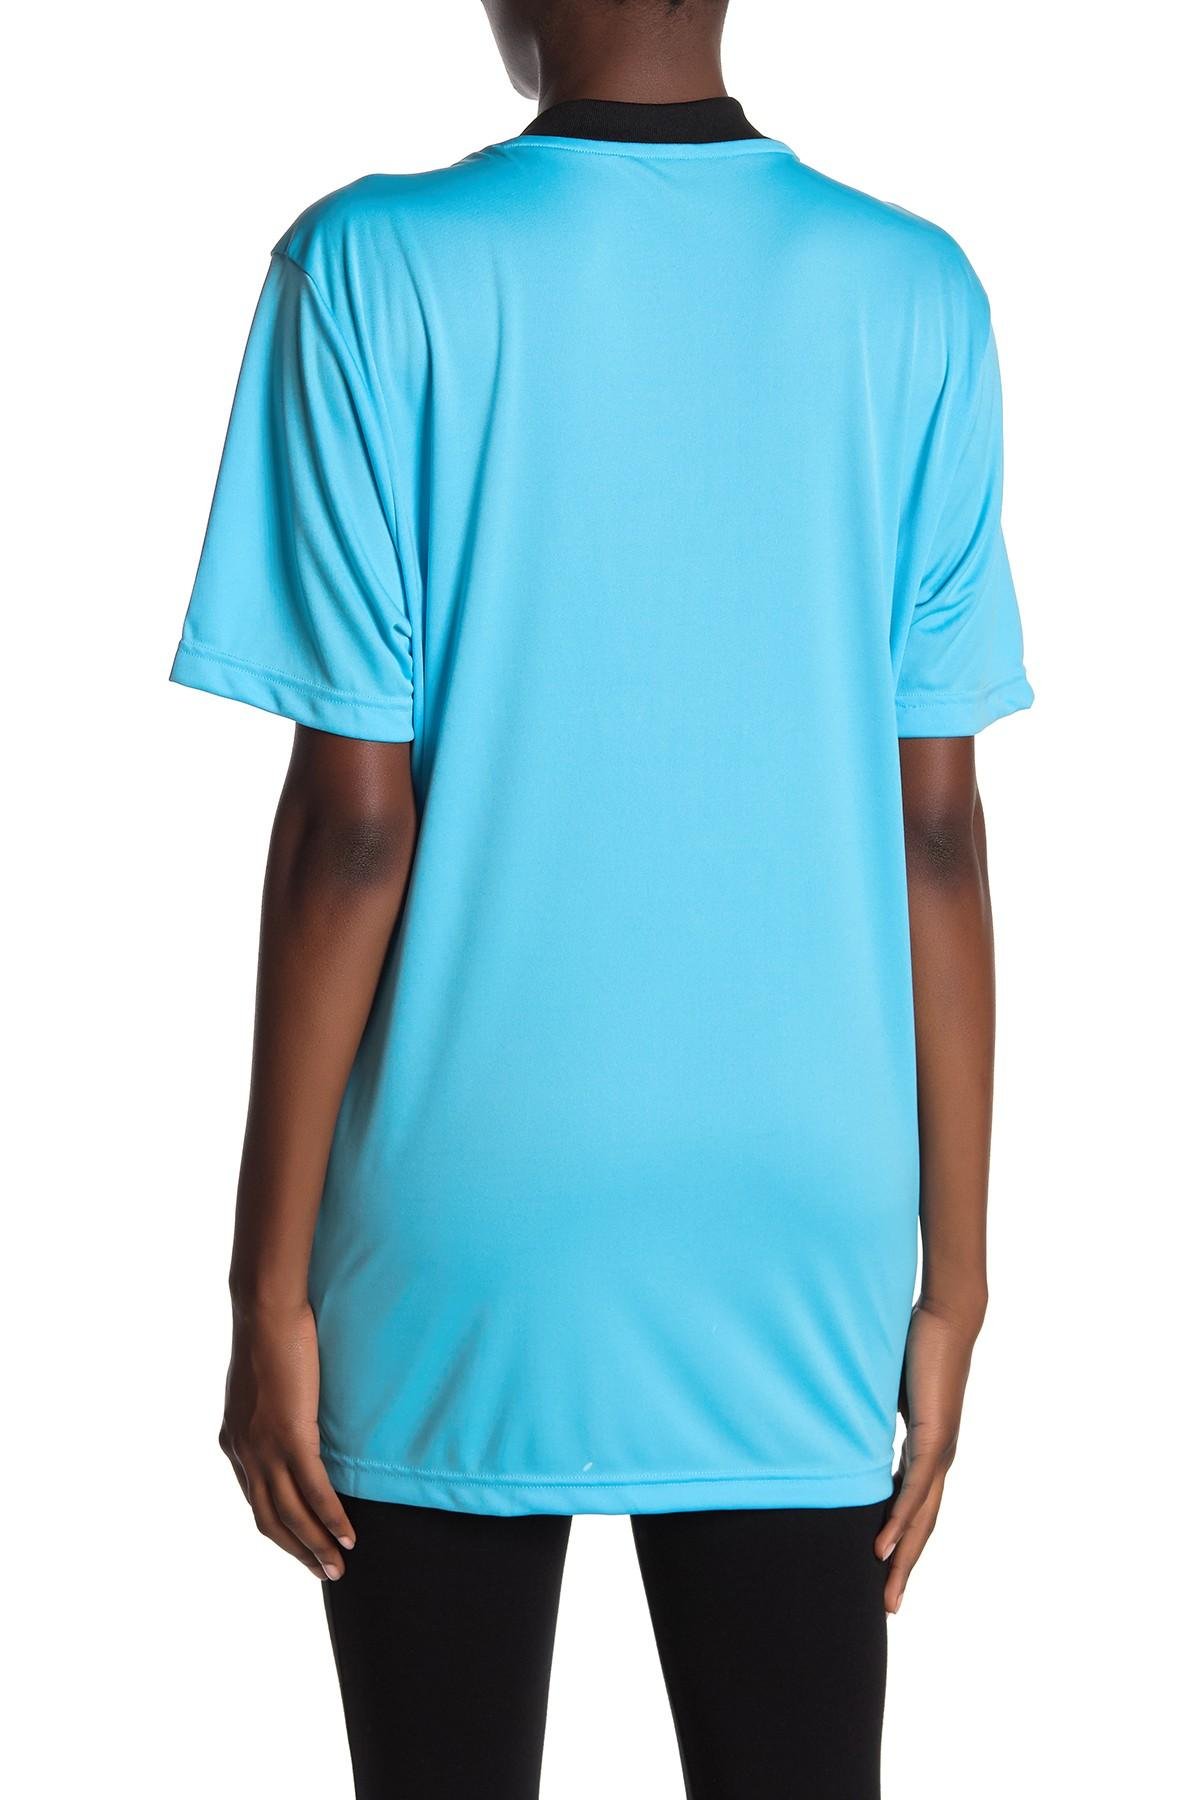 5f587cafa Lyst - adidas Referee Jersey T-shirt in Blue